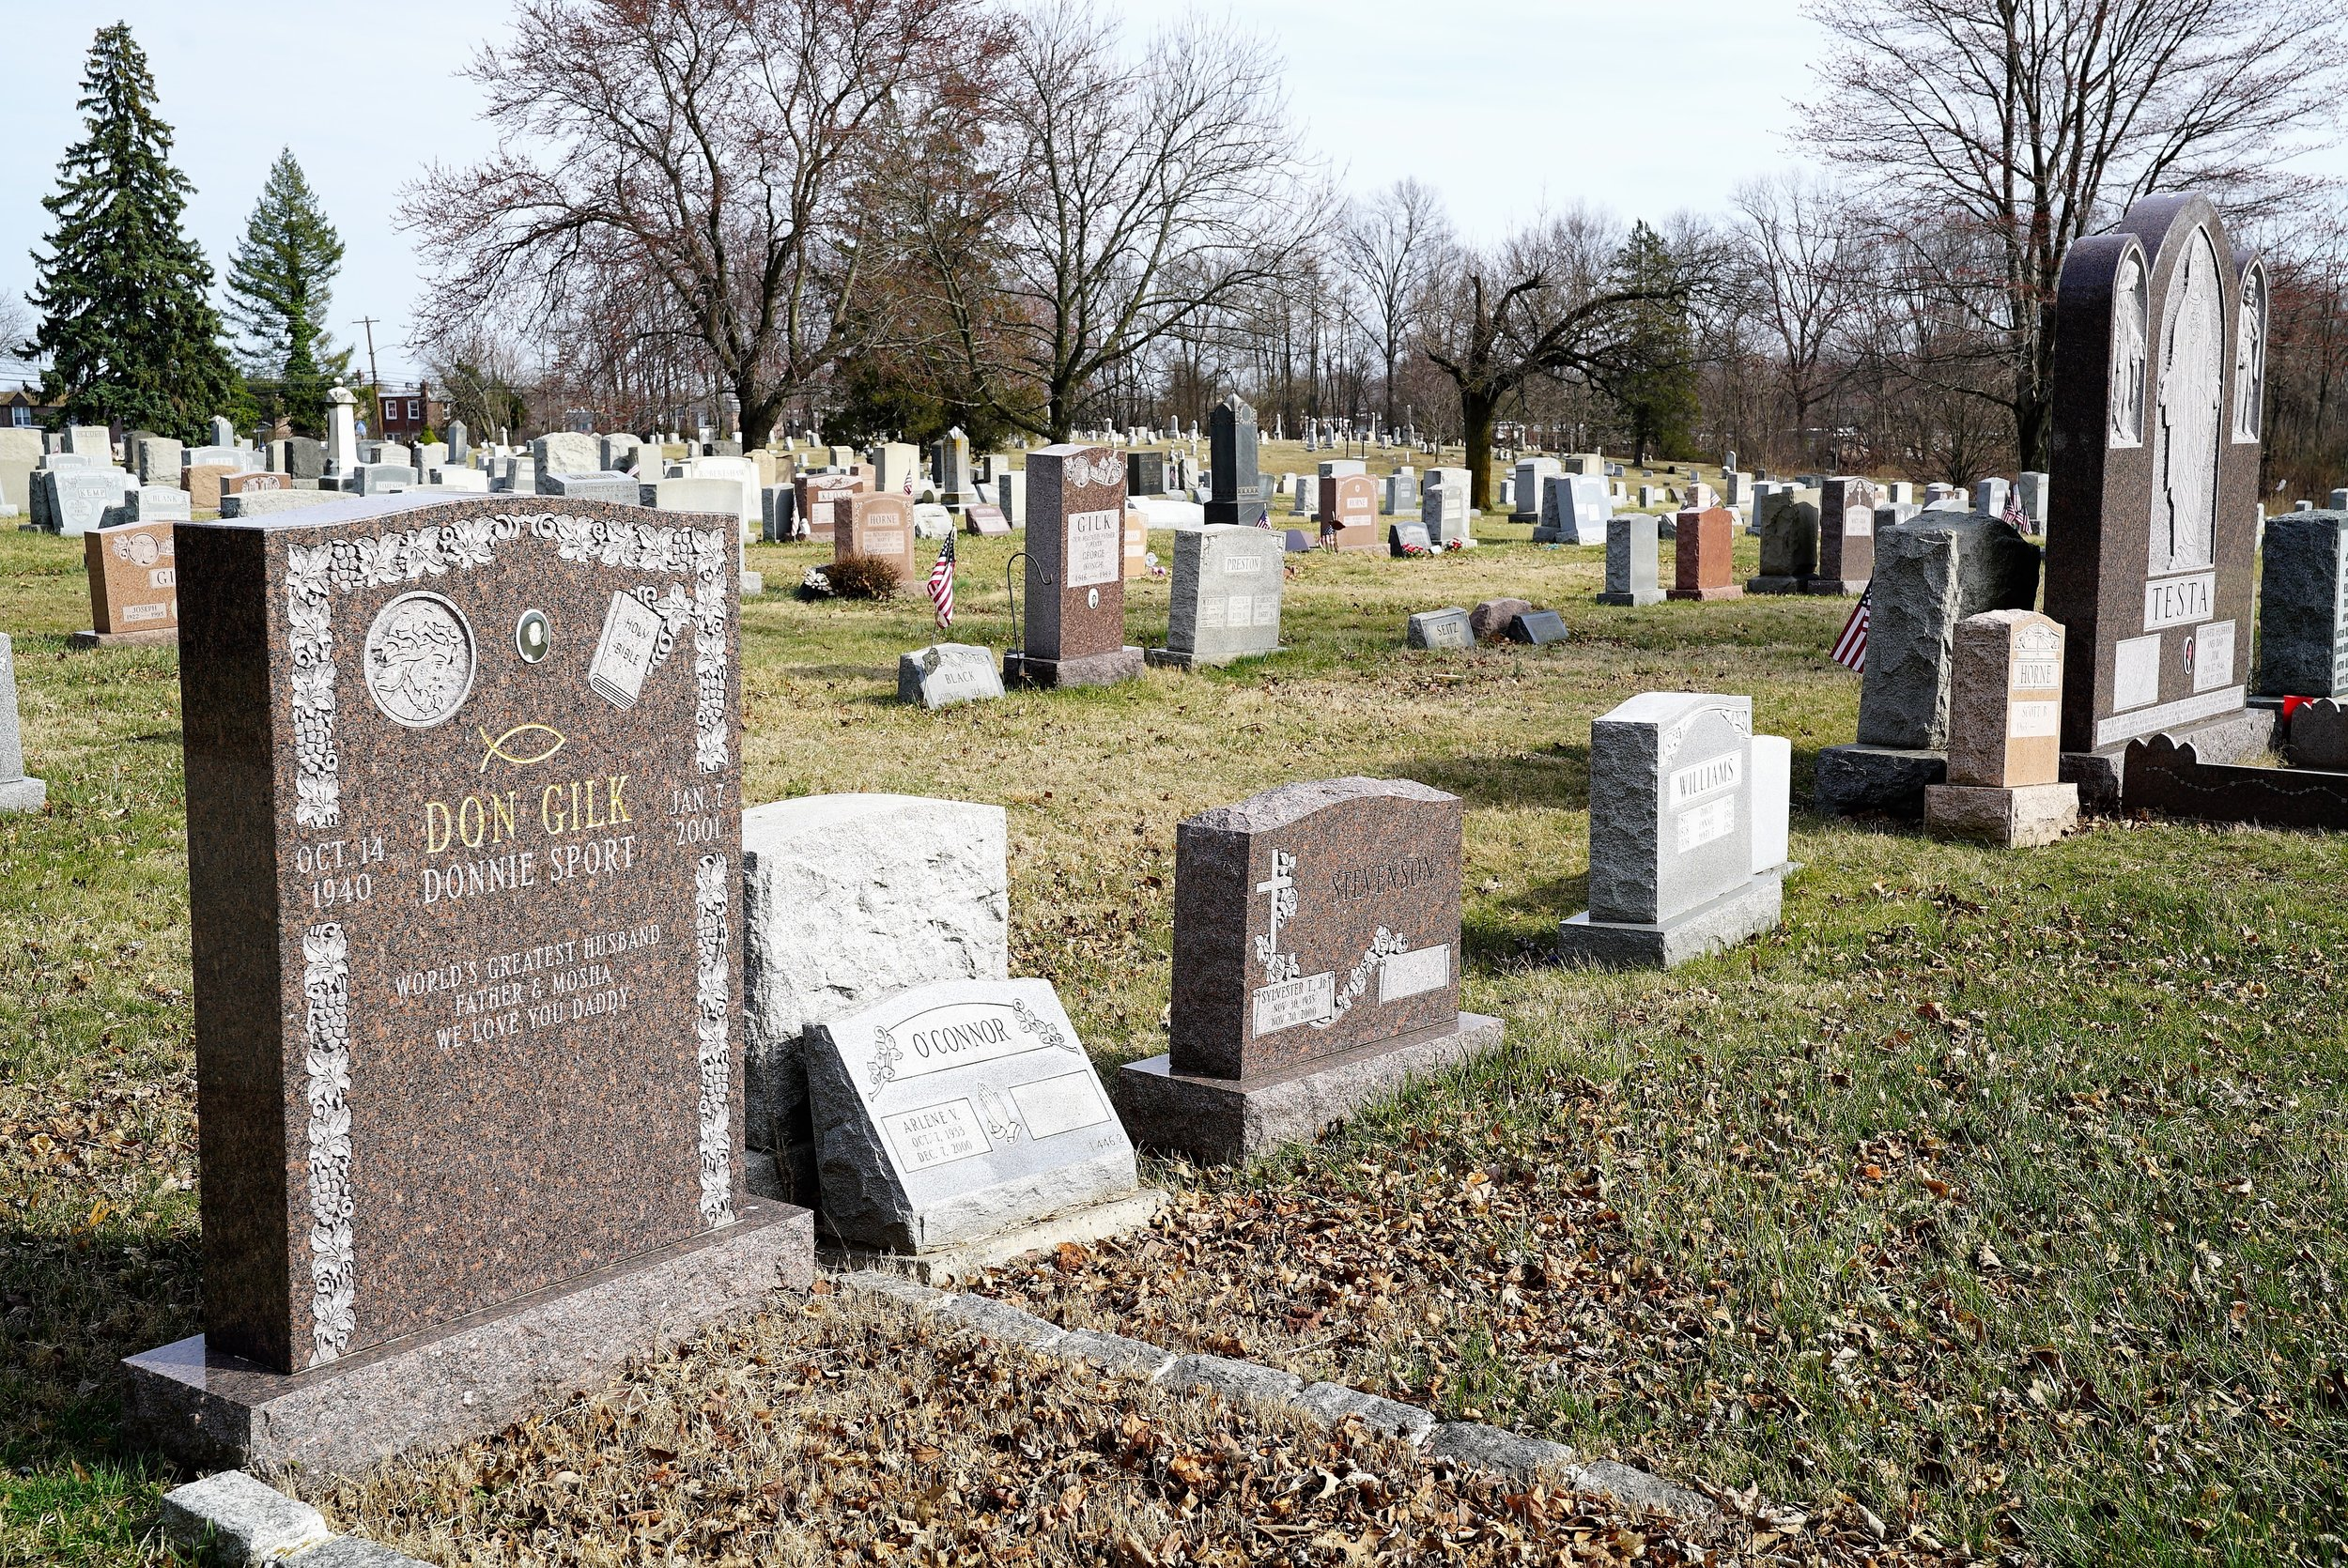 Photo: Mt Zion Cemetery. Collingdale, Pennsylvania. Some of the headstones are quite large.